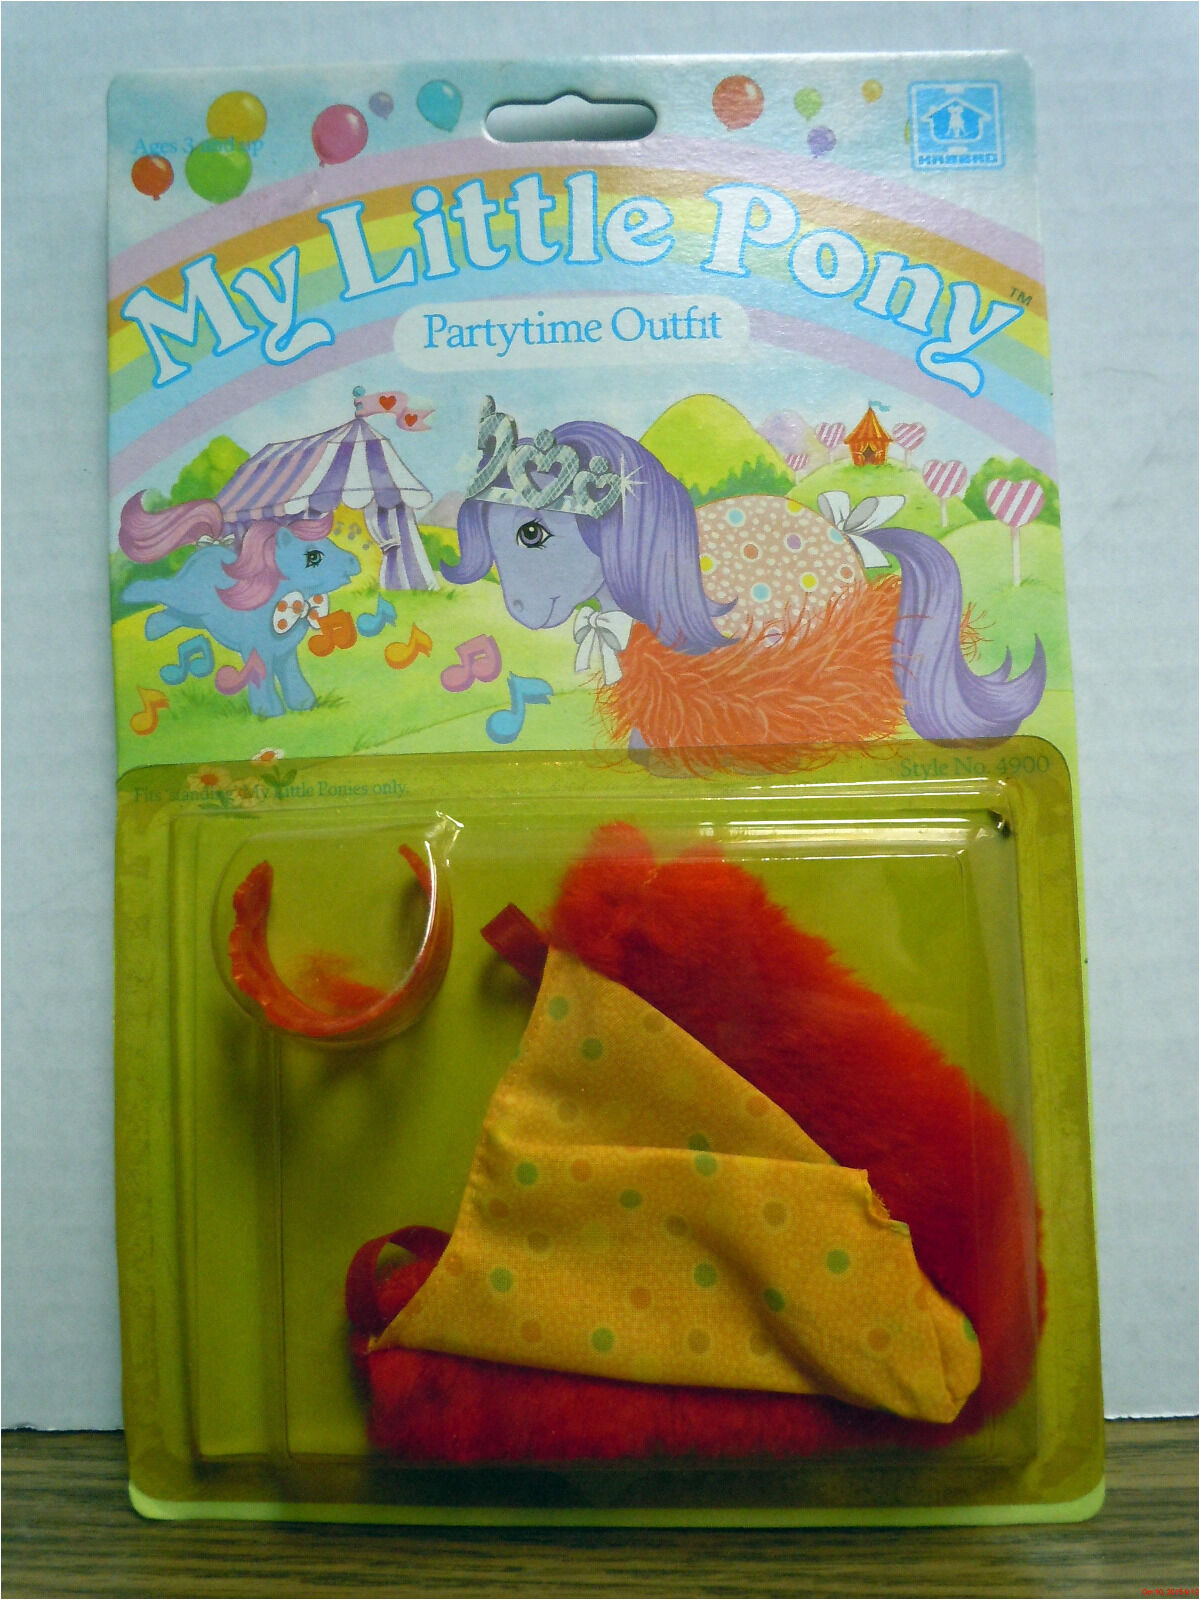 PARTYTIME OUTFIT My Little Pony Costume Vintage 1983 Hasbro NEW